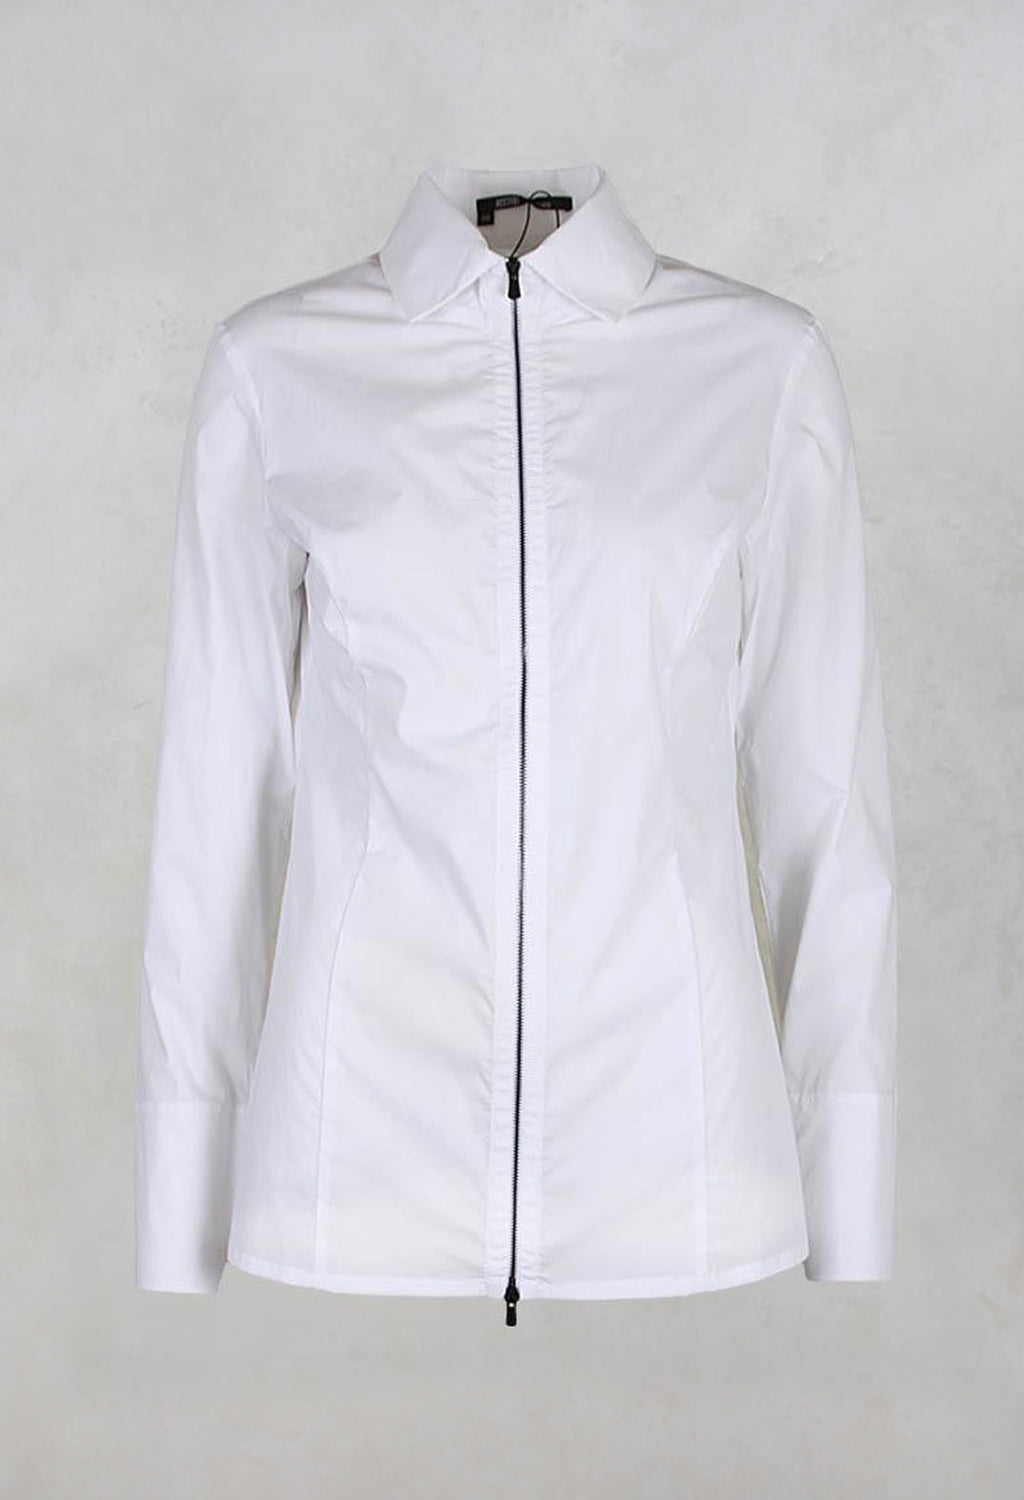 Long Sleeved Blouse with Zip Detail in White